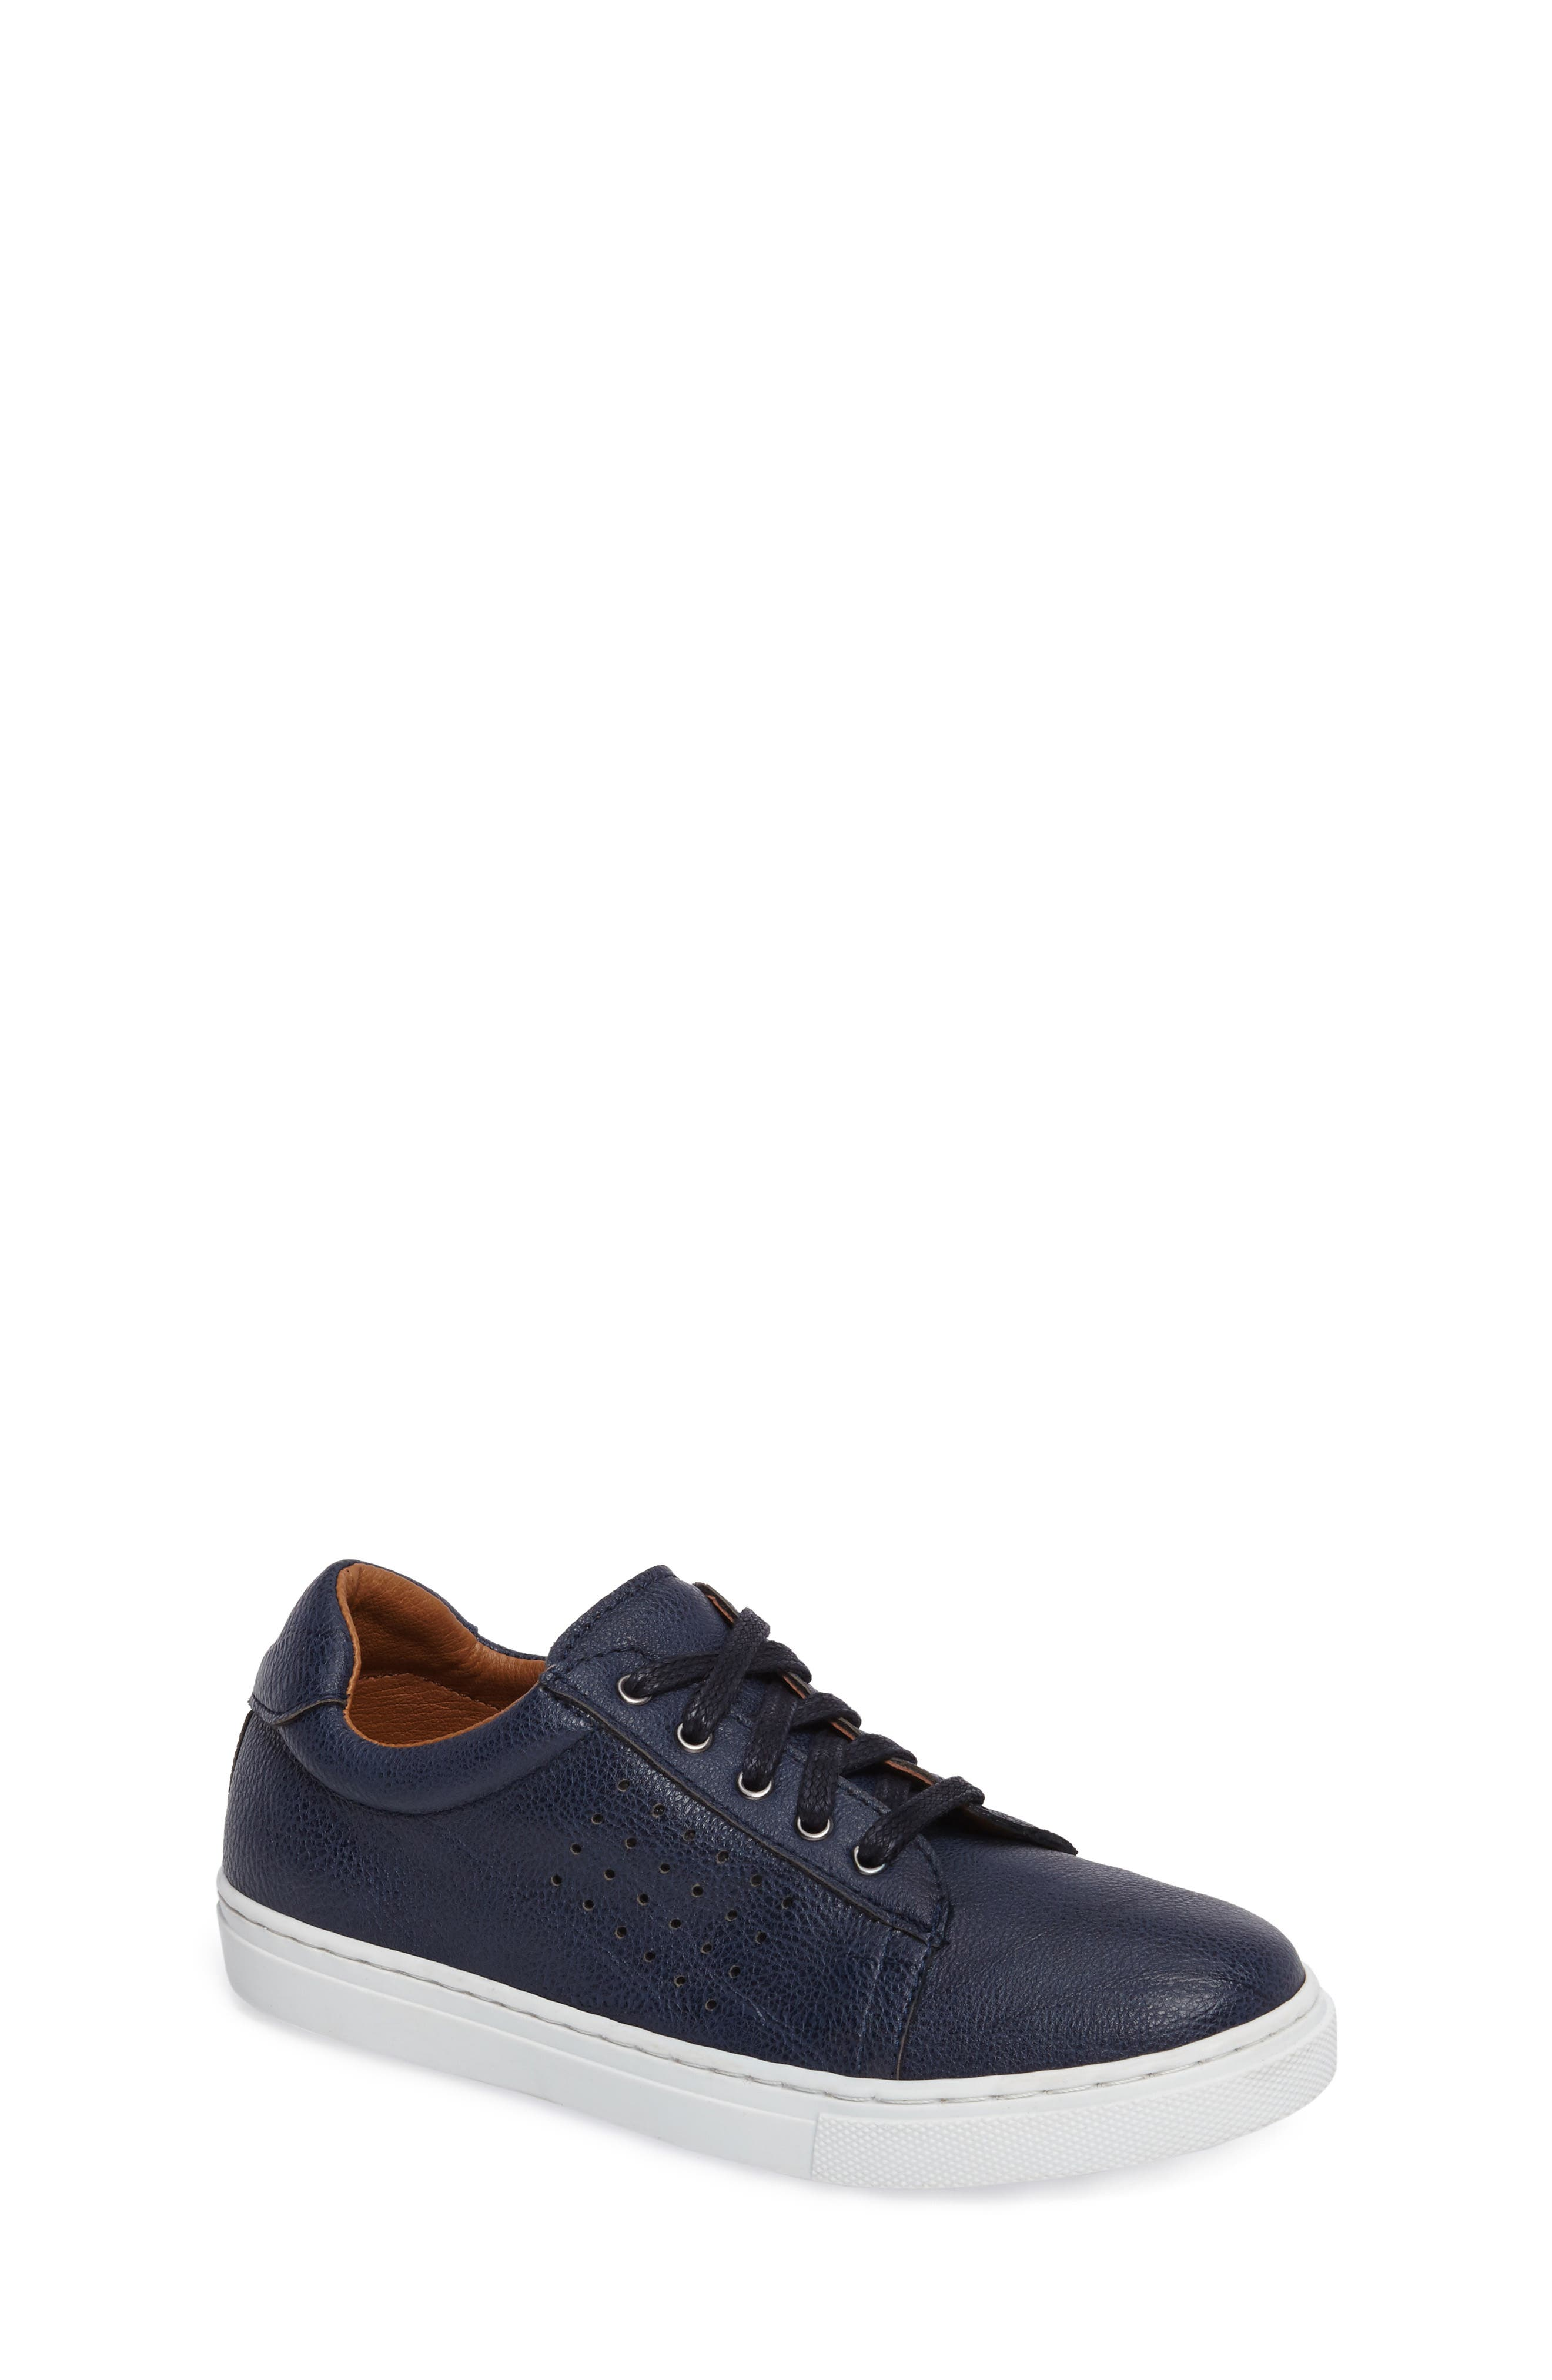 Grafte Perforated Sneaker,                         Main,                         color, Navy